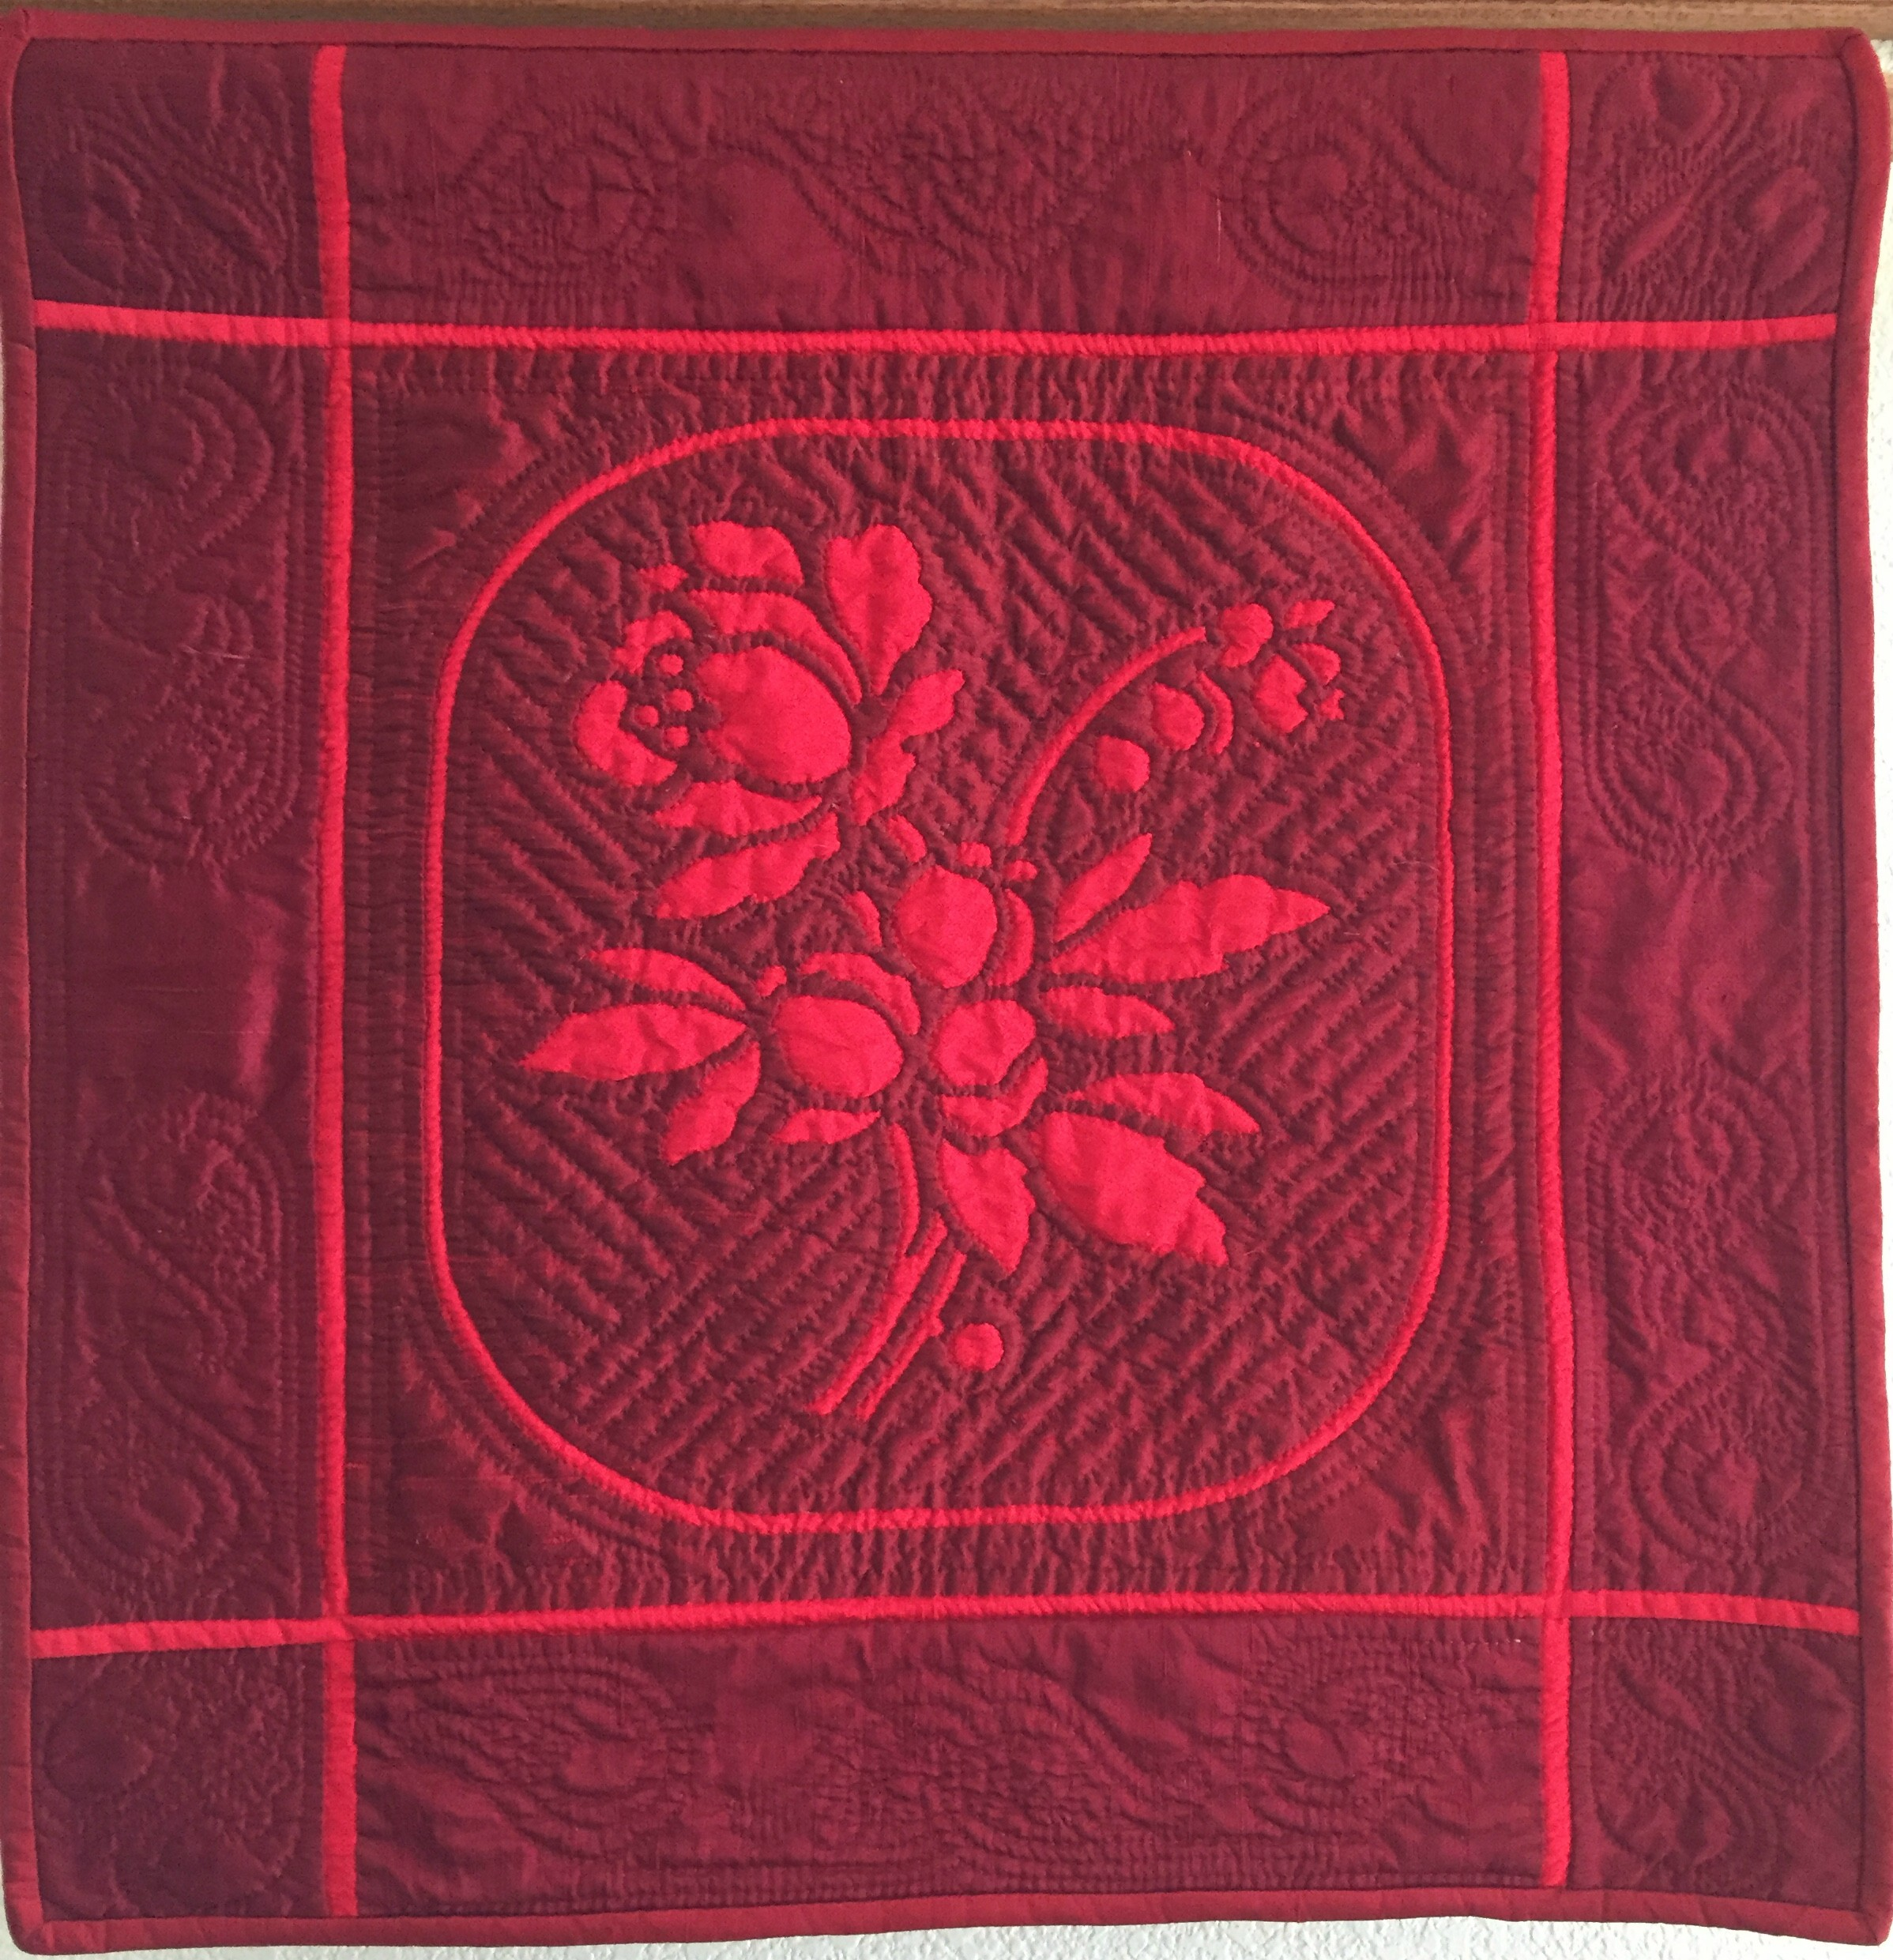 "Beloved , 26"" x 27"", Margaret Brewster Willingham 100% Dupioni and Bengalore silk, silk batting. Reverse needle-turn applique by hand with silk thread, hand quilted with red 100% cotton thread"